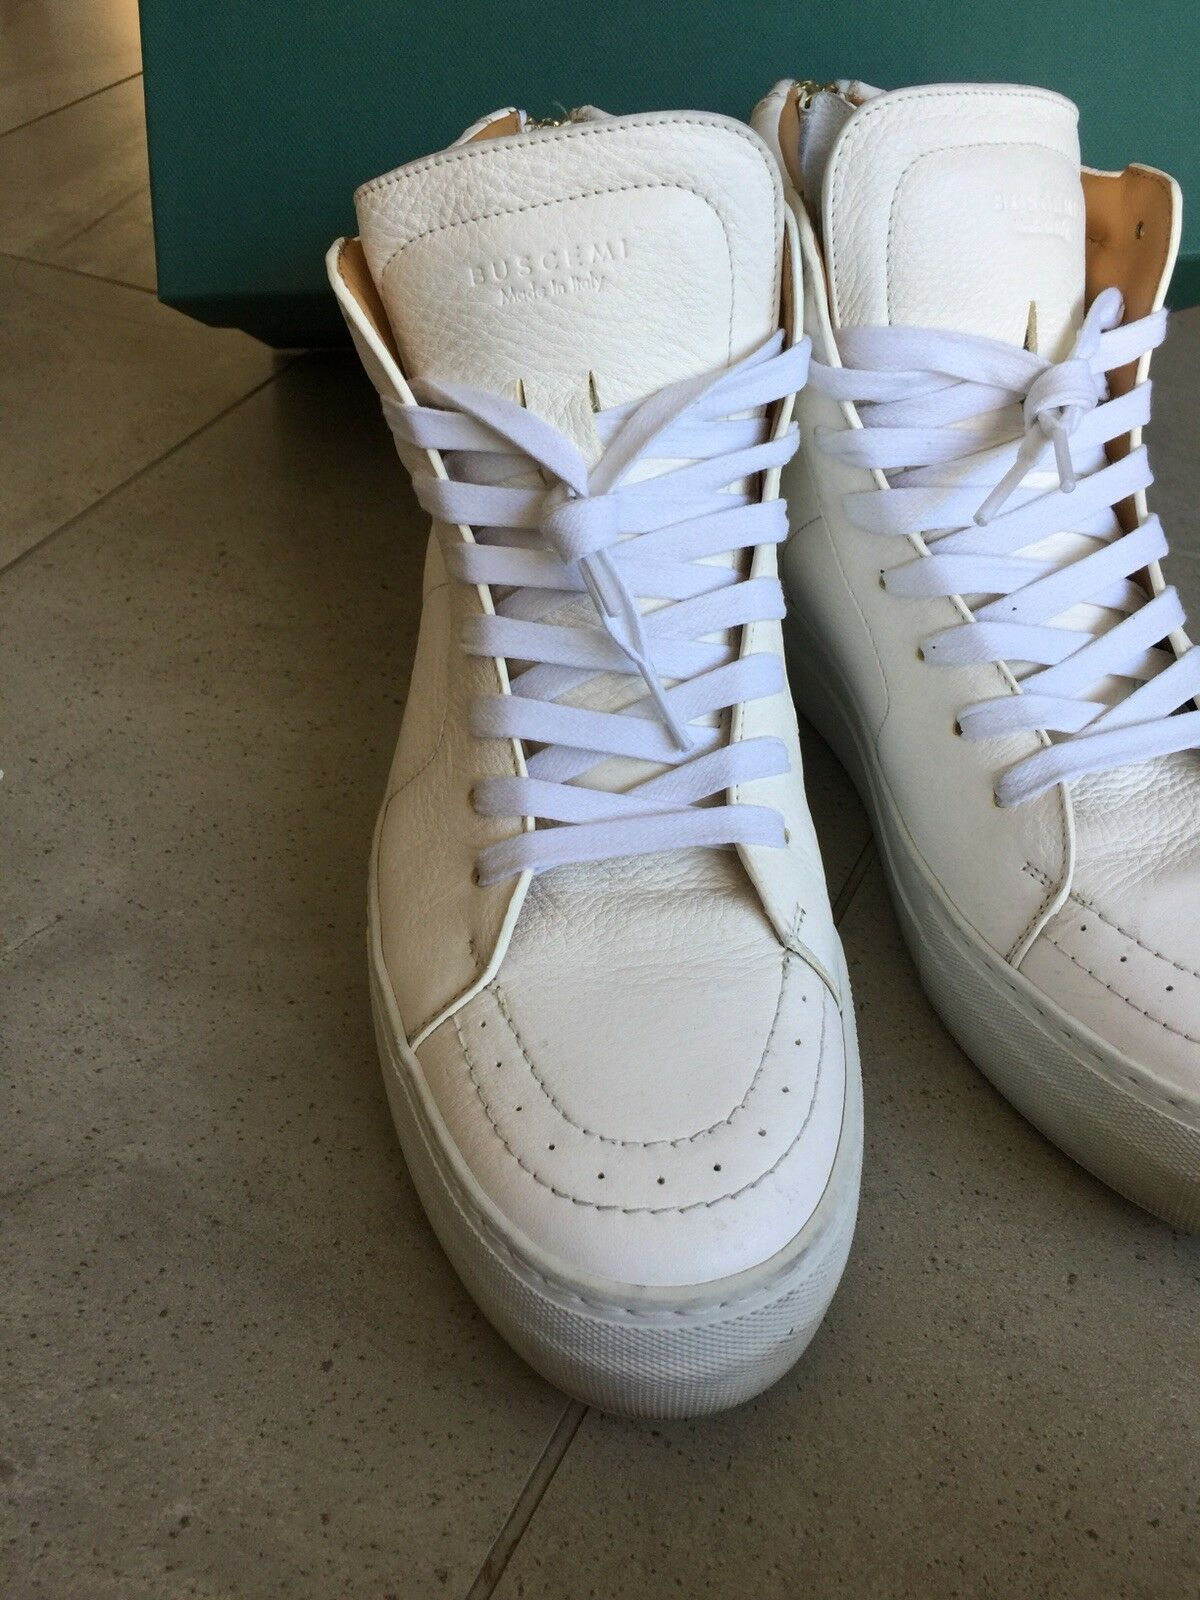 Buscemi 140mm 100 140 mm Hi Retro 42 9 blanc or 120 160 baskets chaussures